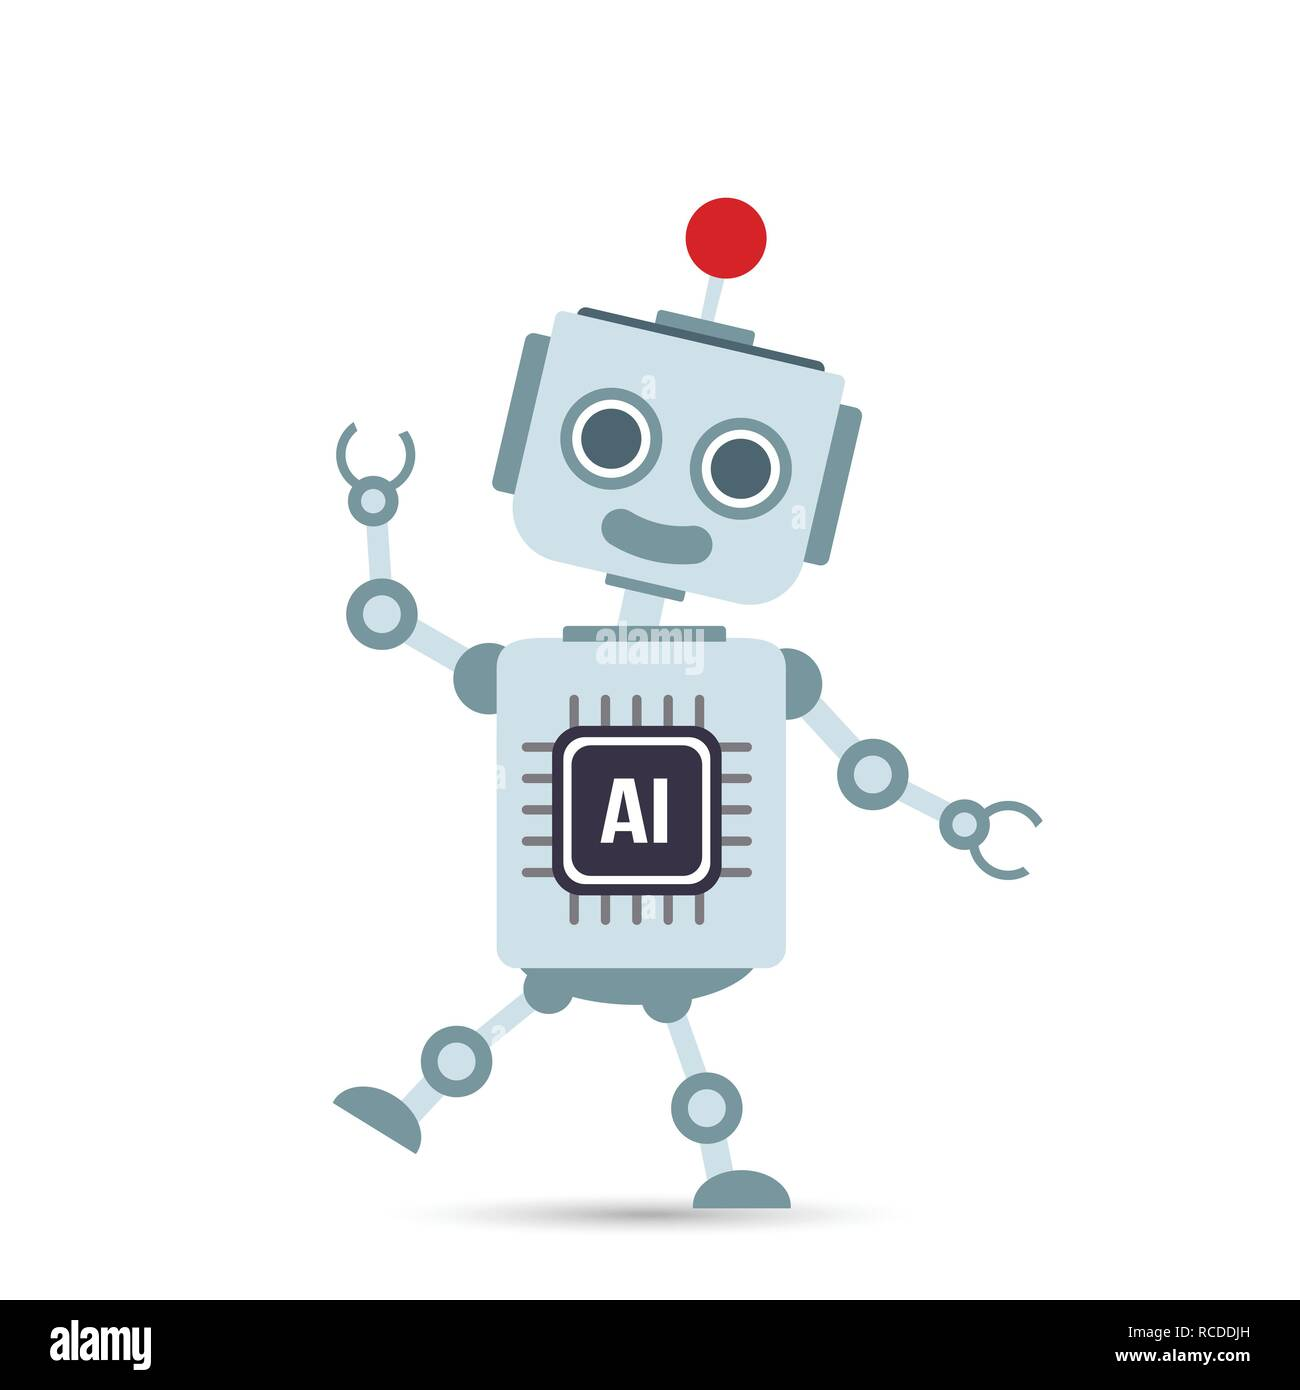 AI Artificial intelligence Technology robot cartoon design element vector illustration eps10 Stock Vector